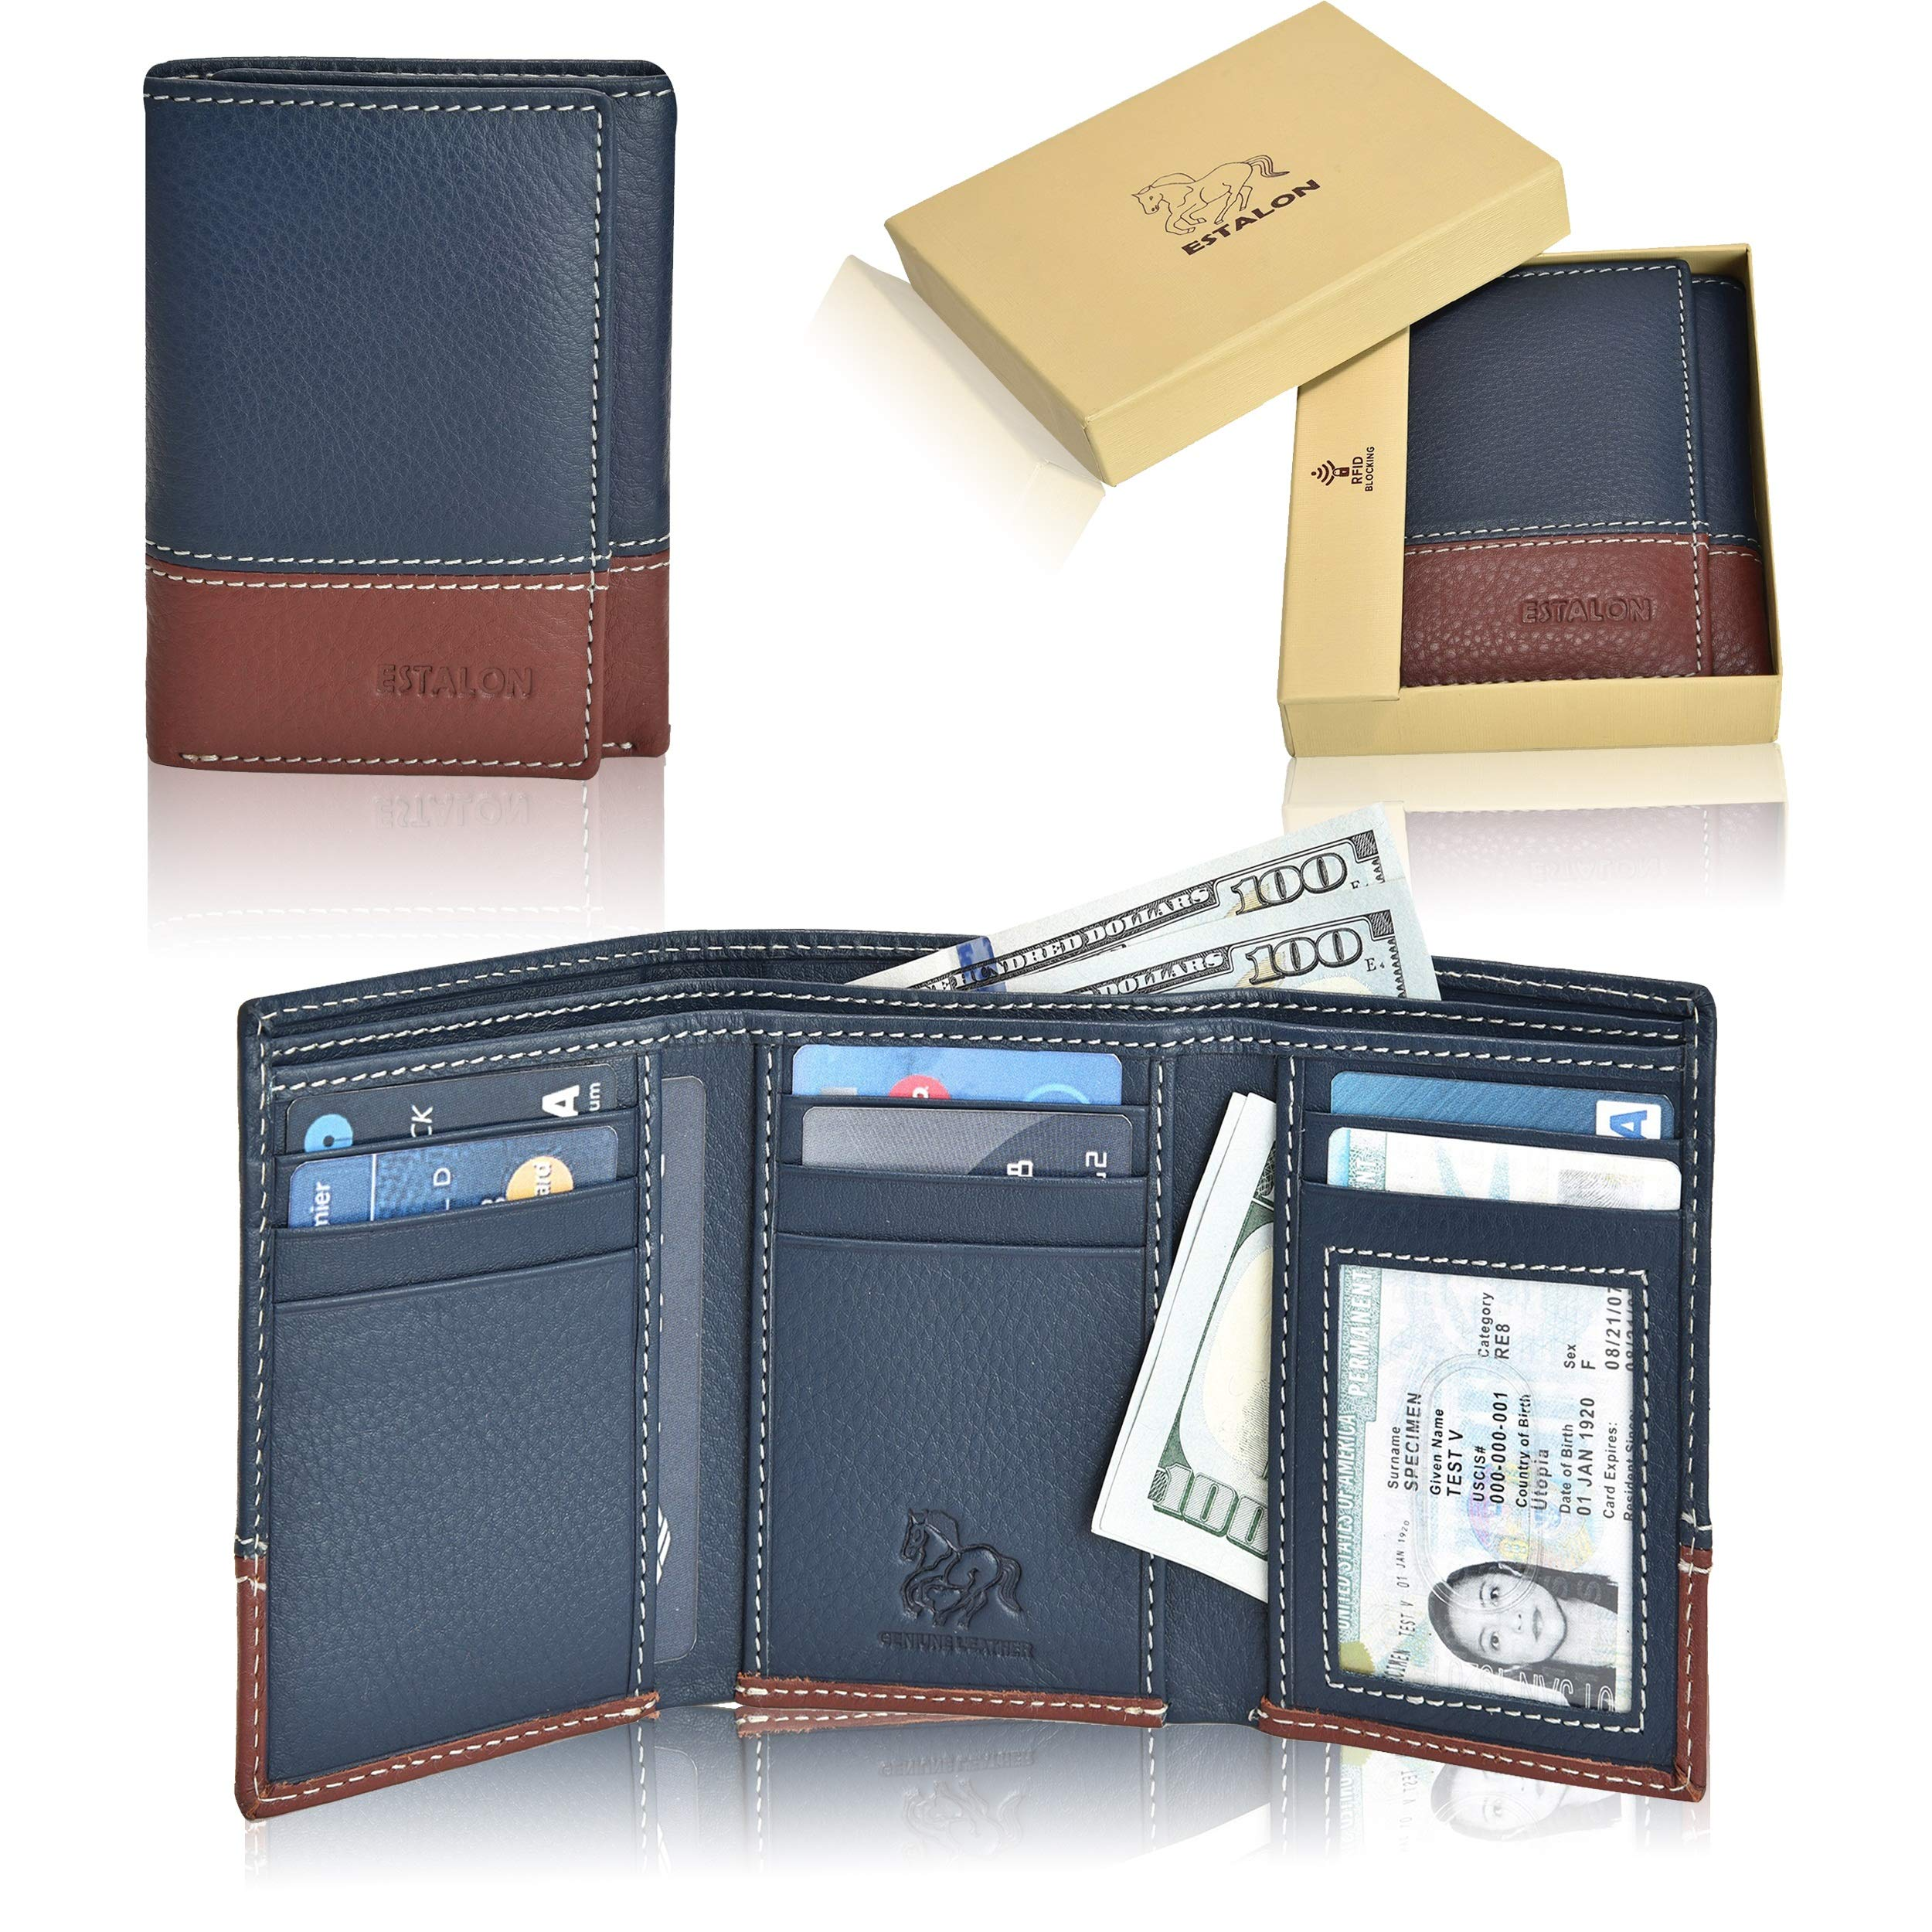 Slim Leather RFID Trifold for Men - Handmade RFID Blocking Genuine Leather 7 Card Holder With ID Window by Estalon